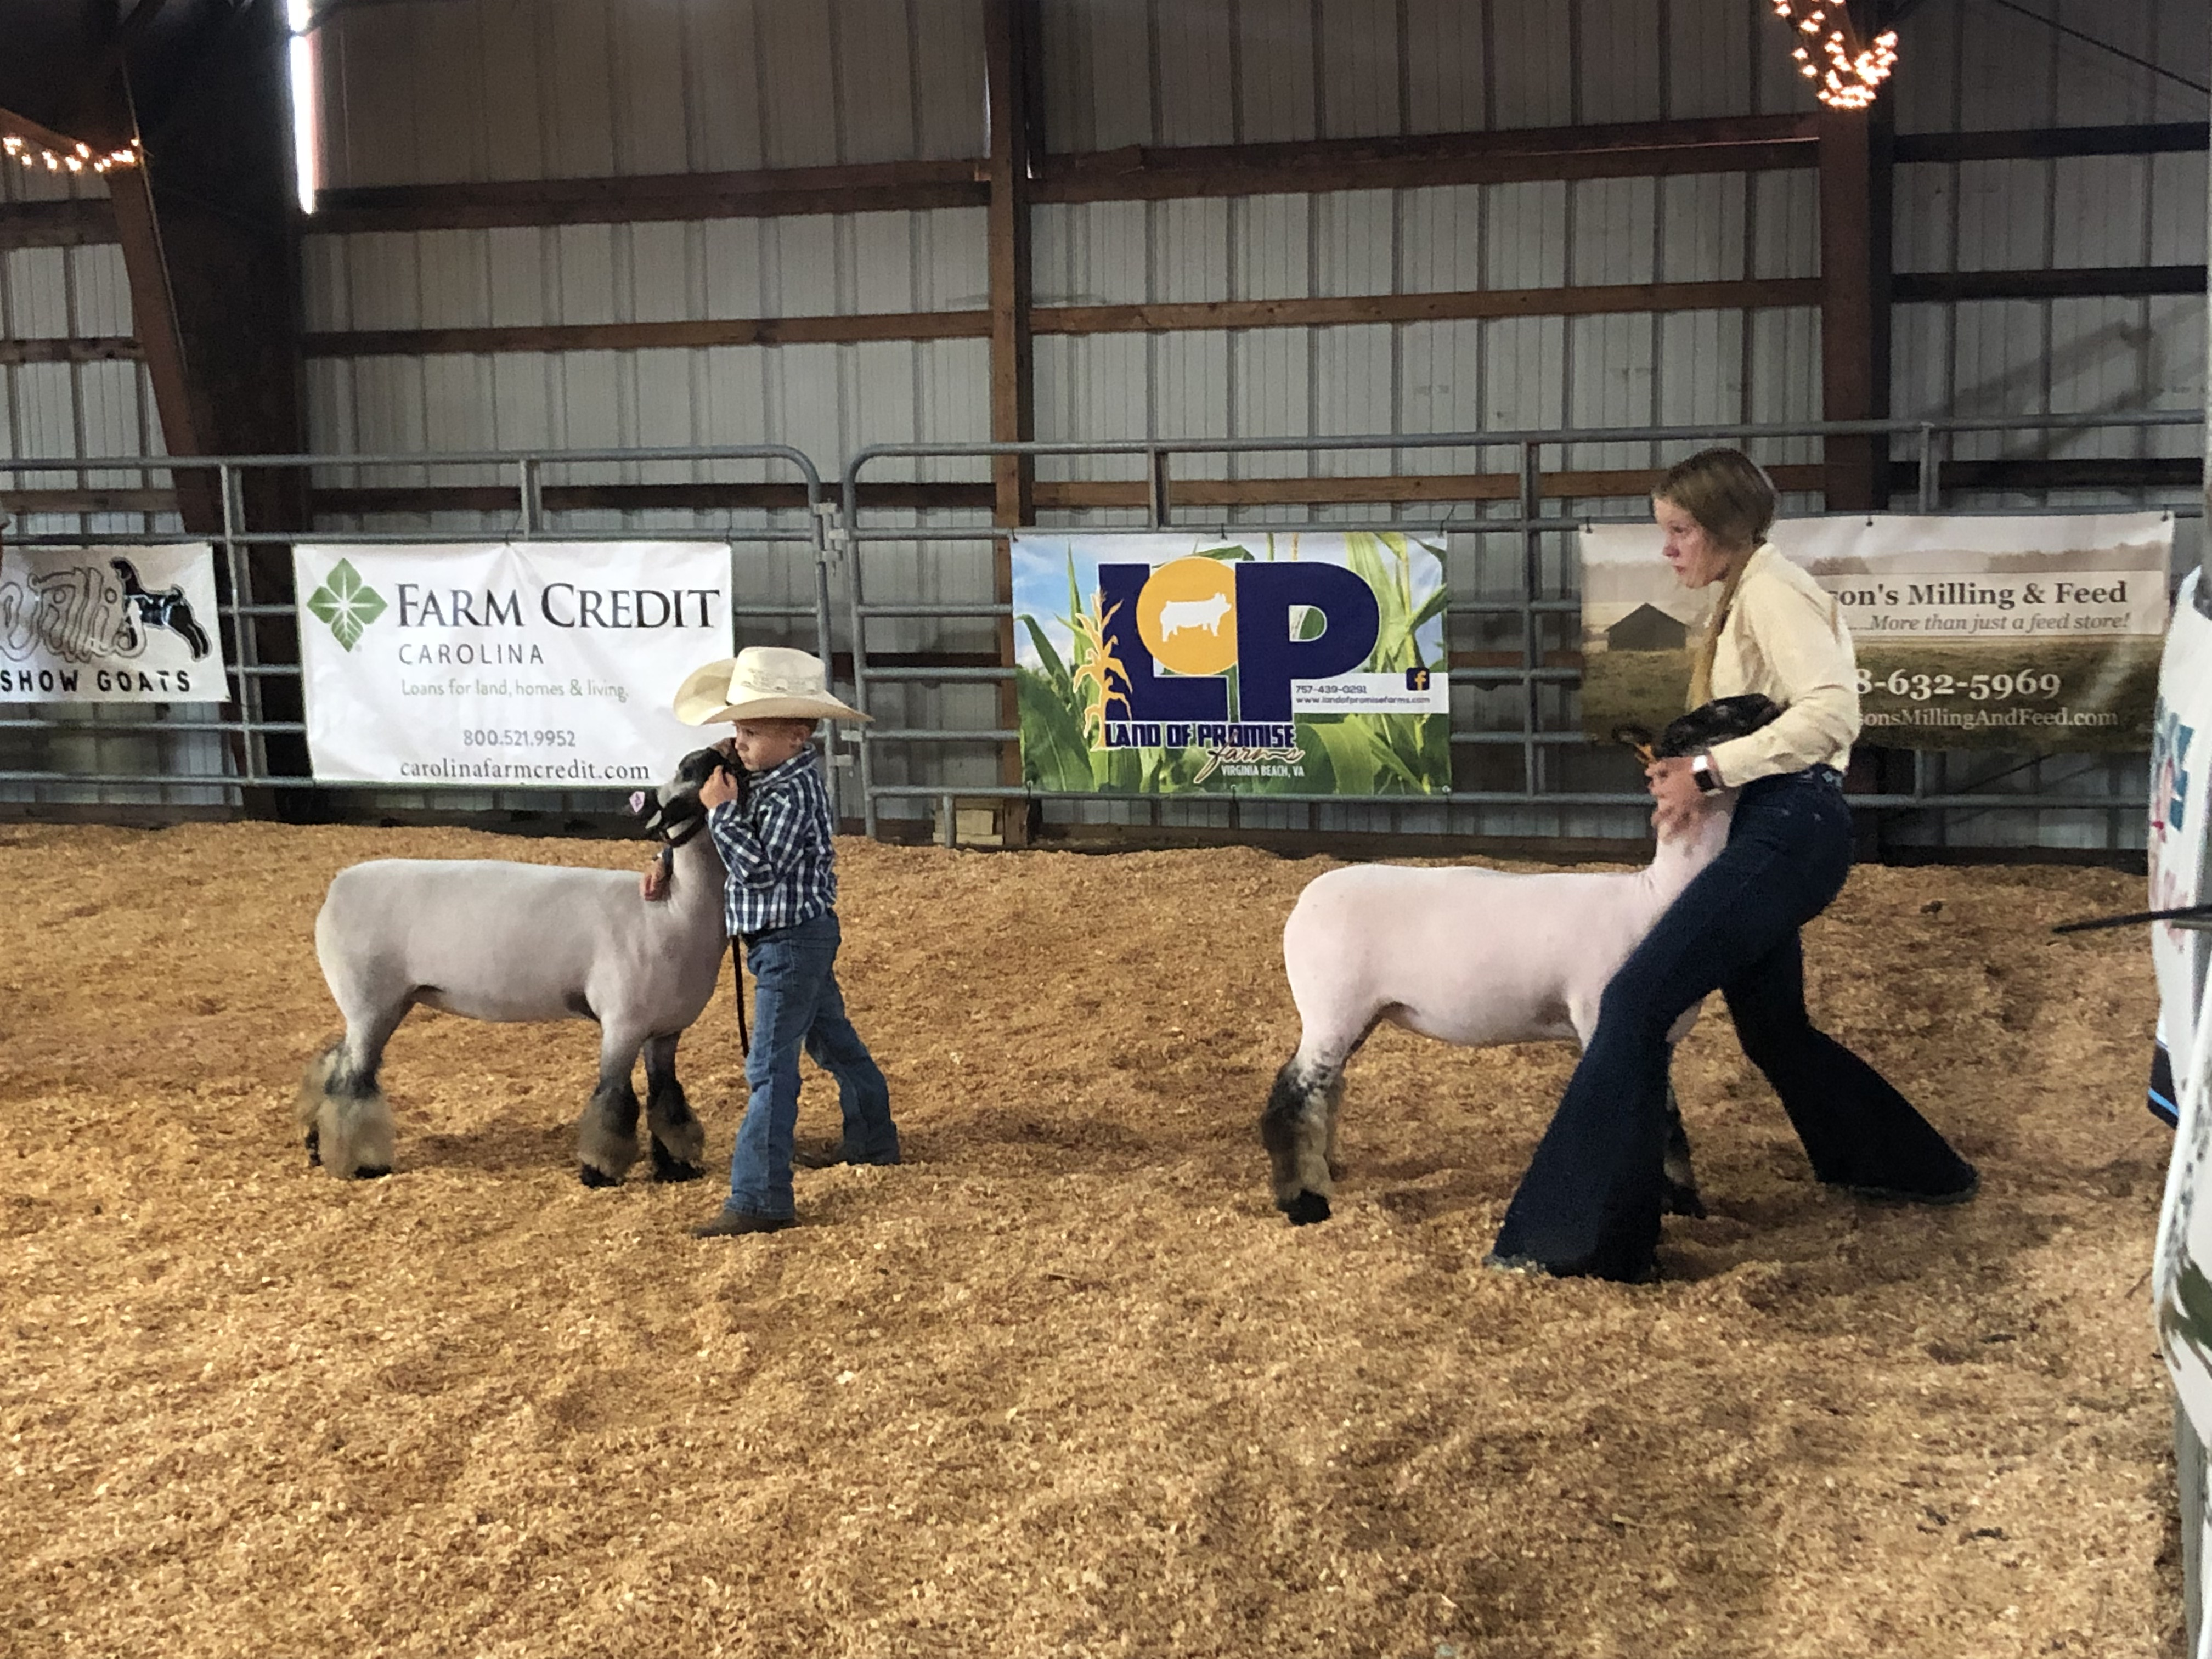 Harrison Ford and Ellen Simmons make eye contact with the judge as they show their lambs at the 2021 fair.